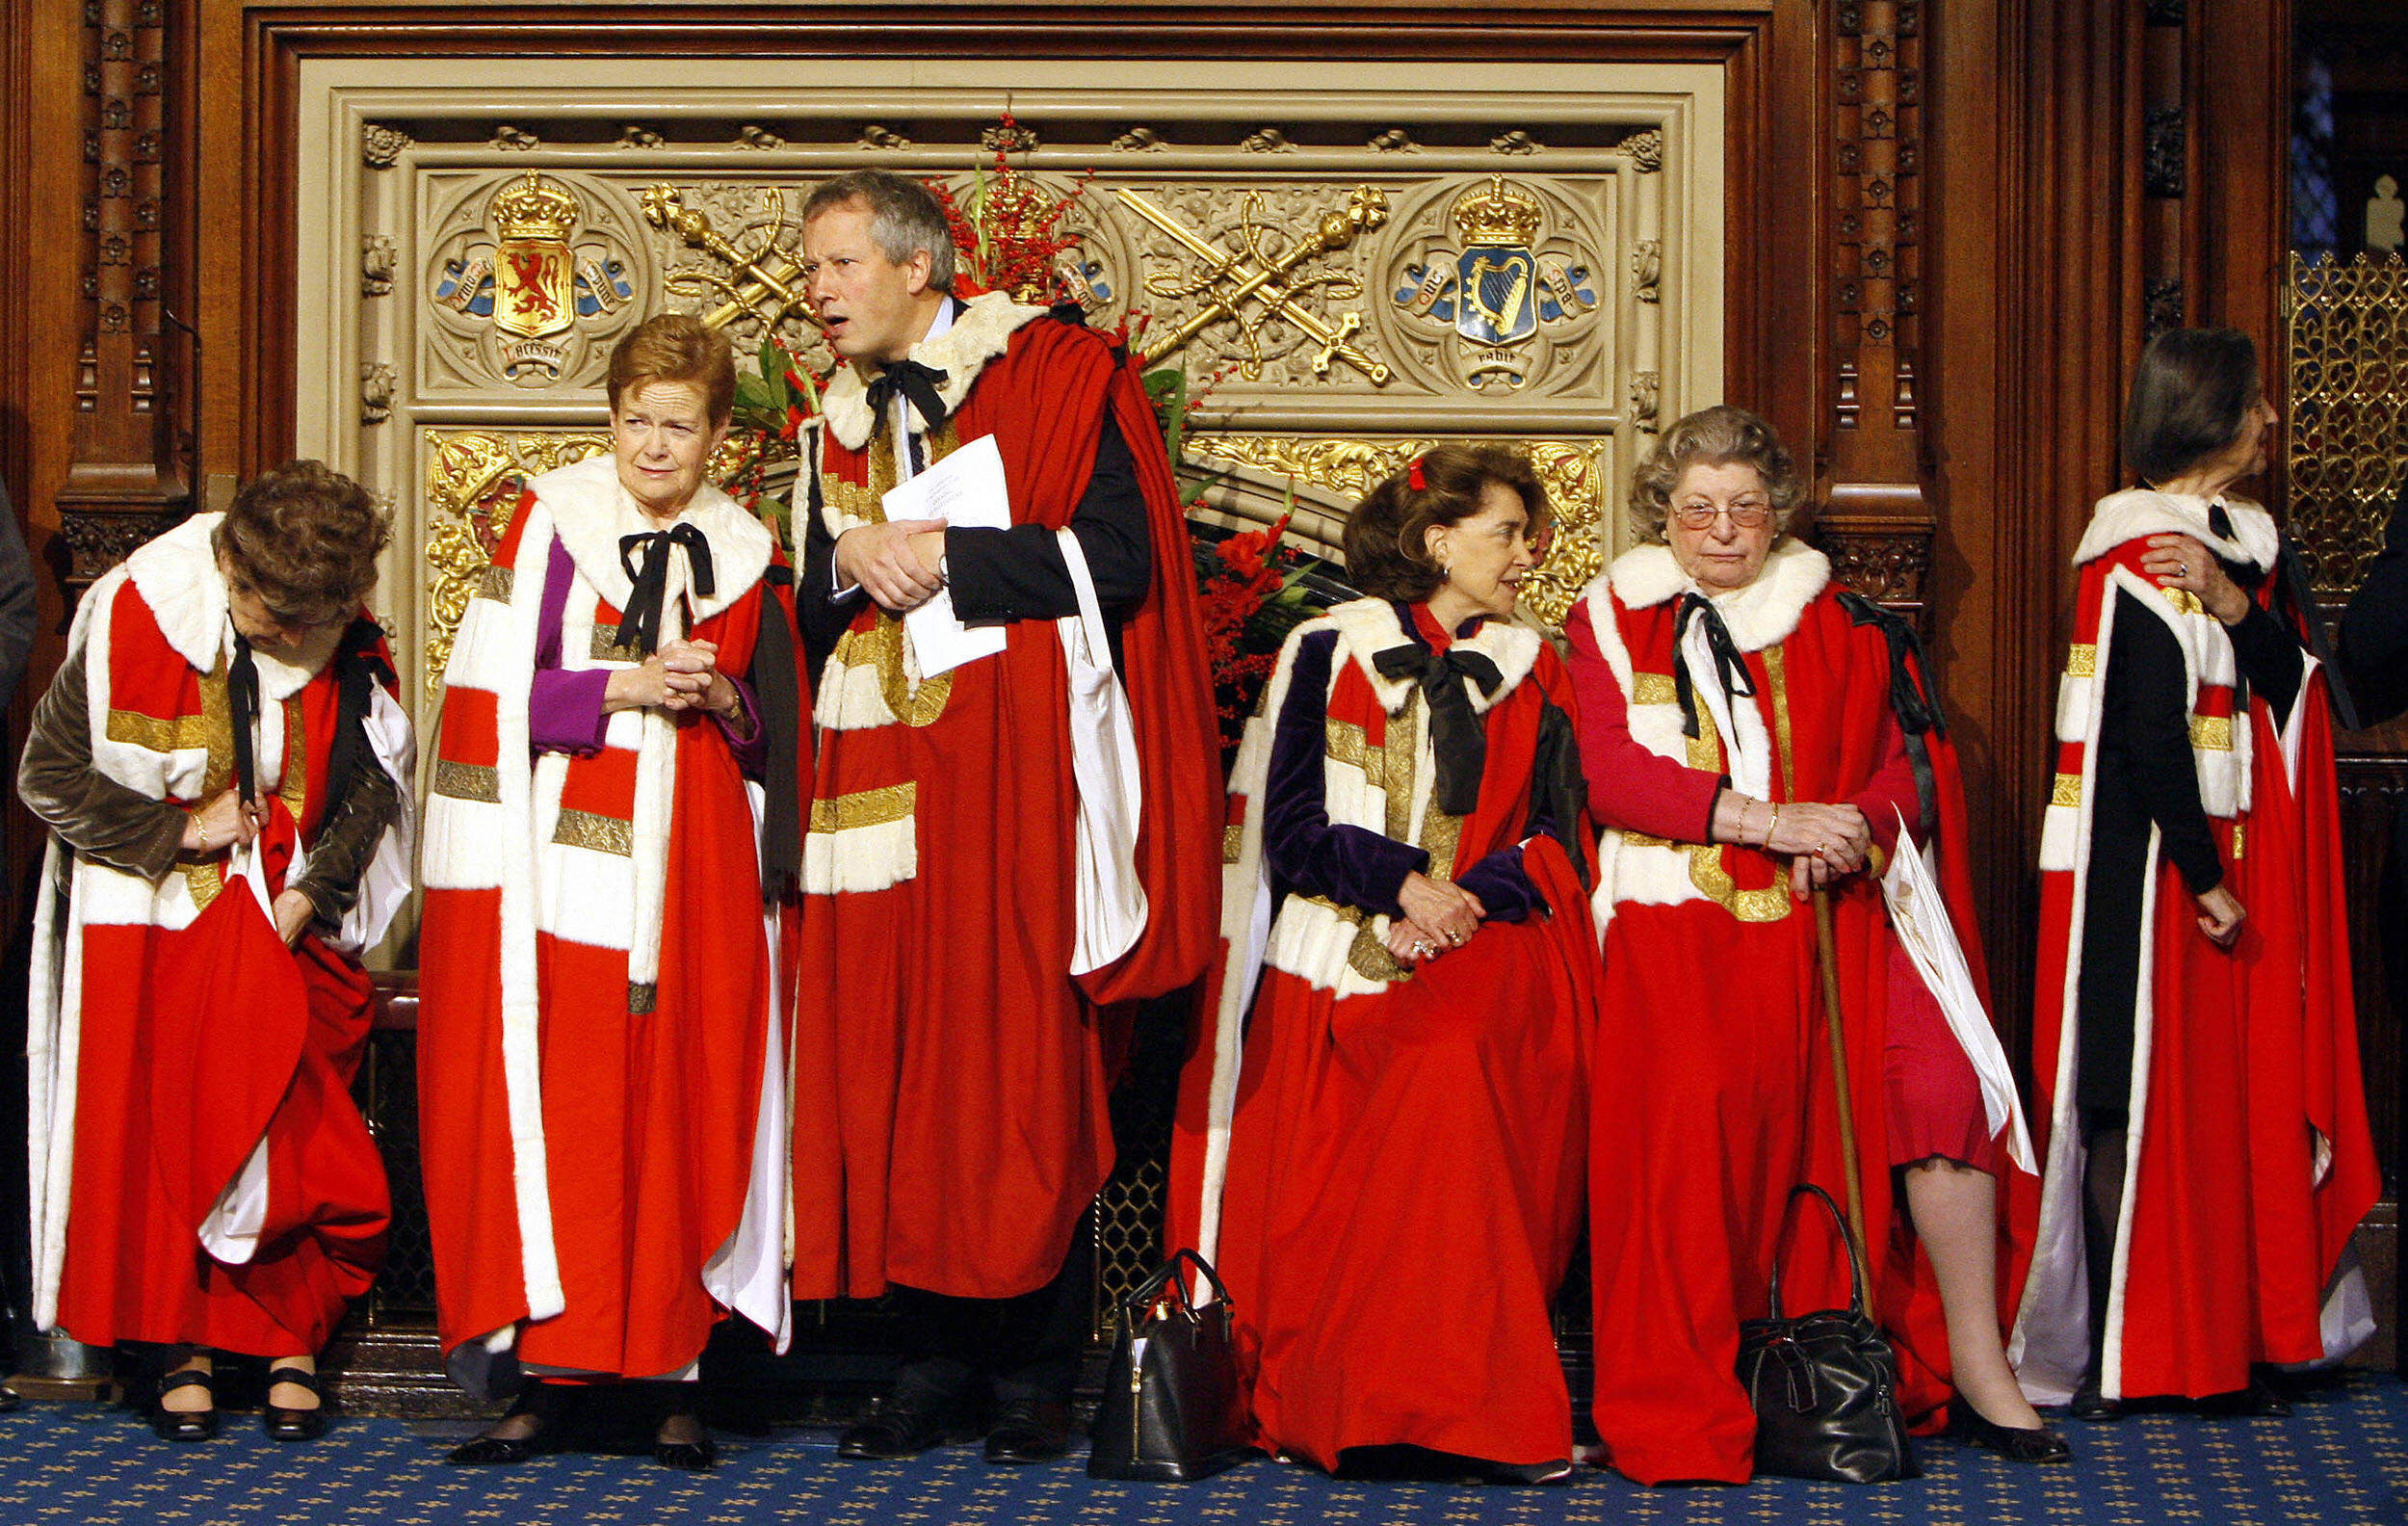 Dark forces in Putin's Russia, high farce in the Lords and Labour's martinet patrician